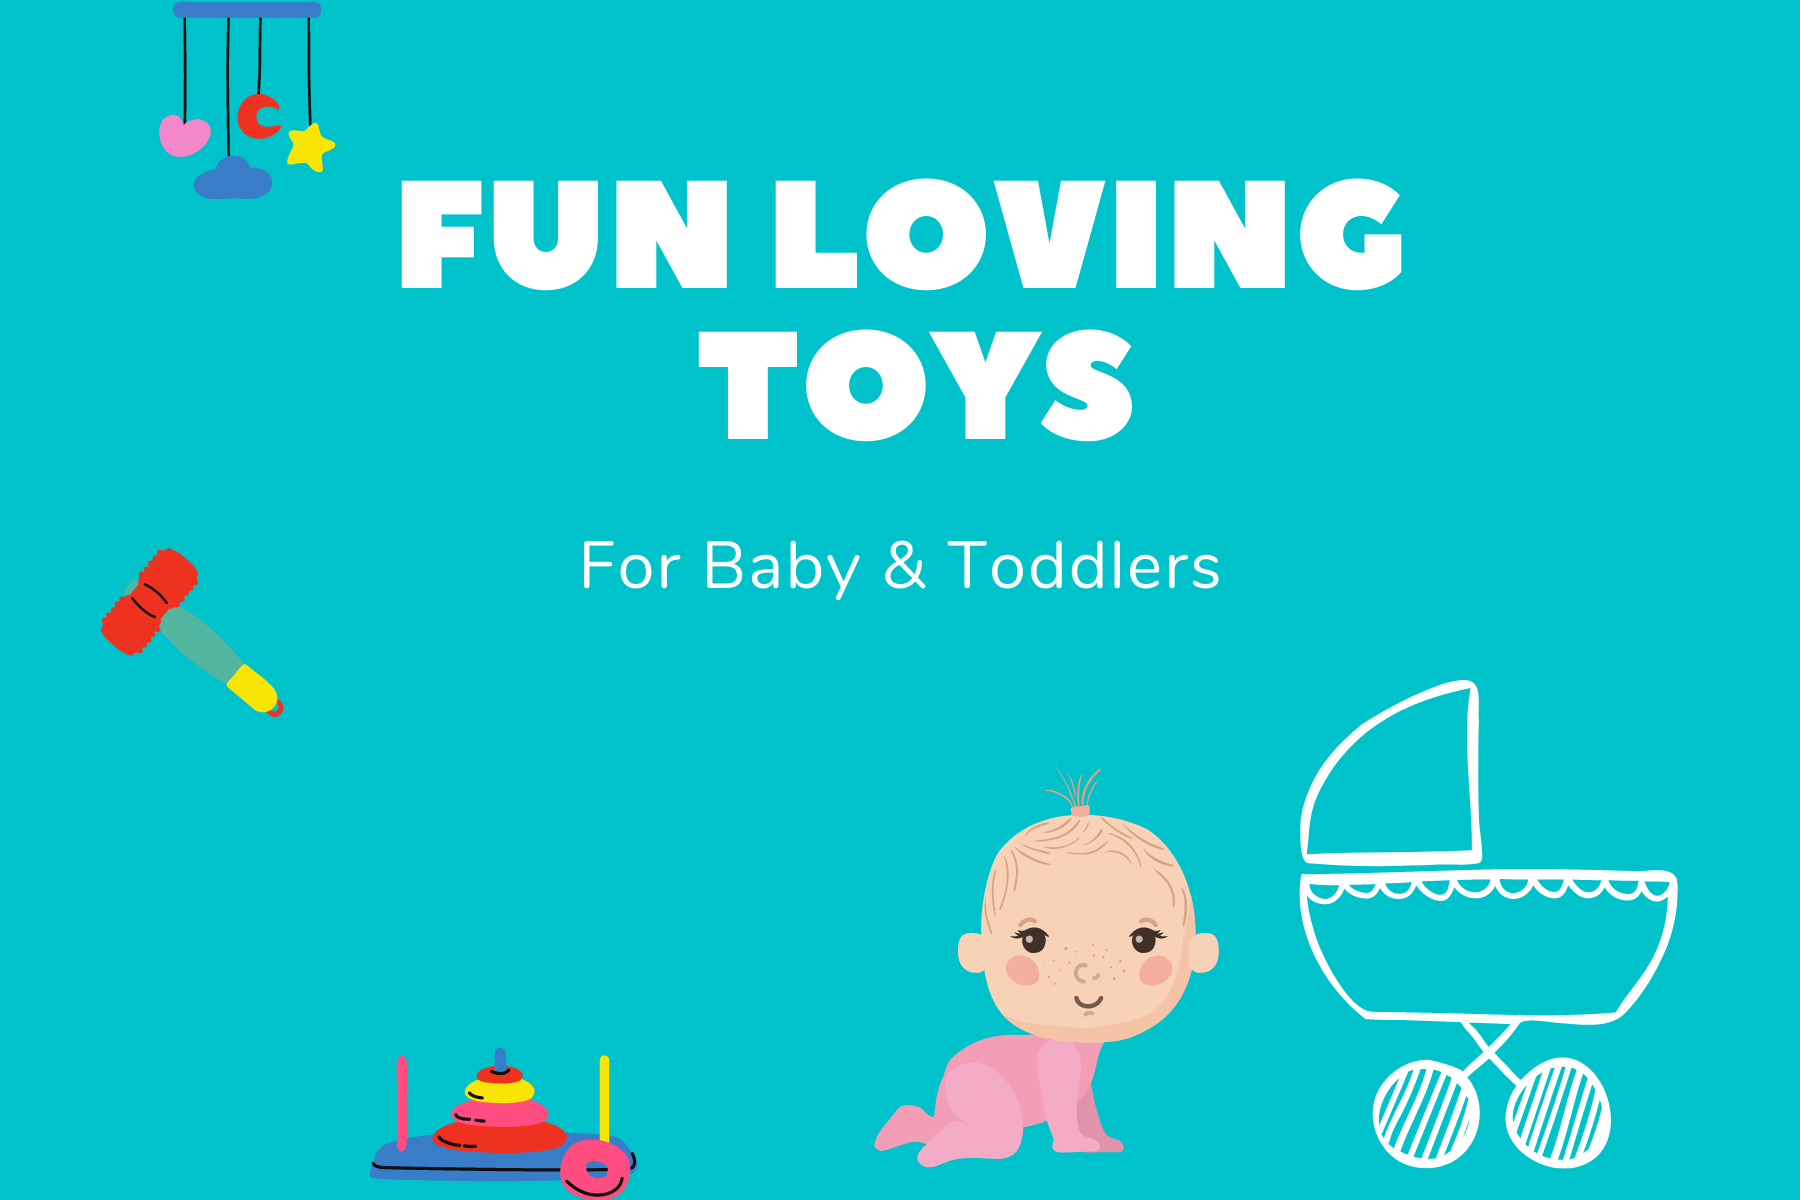 Fun Loving Toys Online at GiftWaley